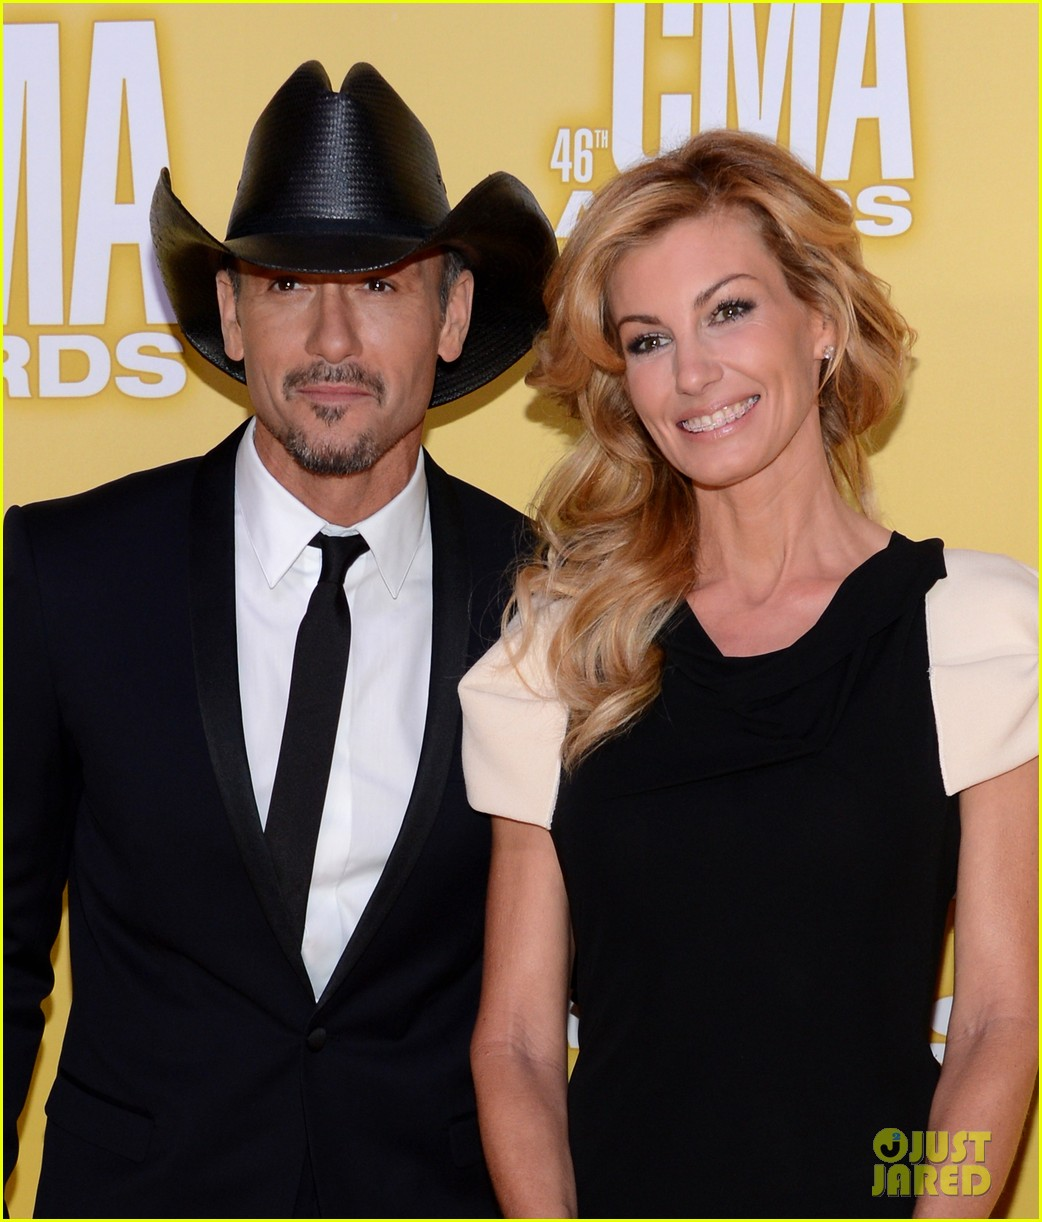 Tim mcgraw and faith hill little kids rock for Do tim mcgraw and faith hill have kids